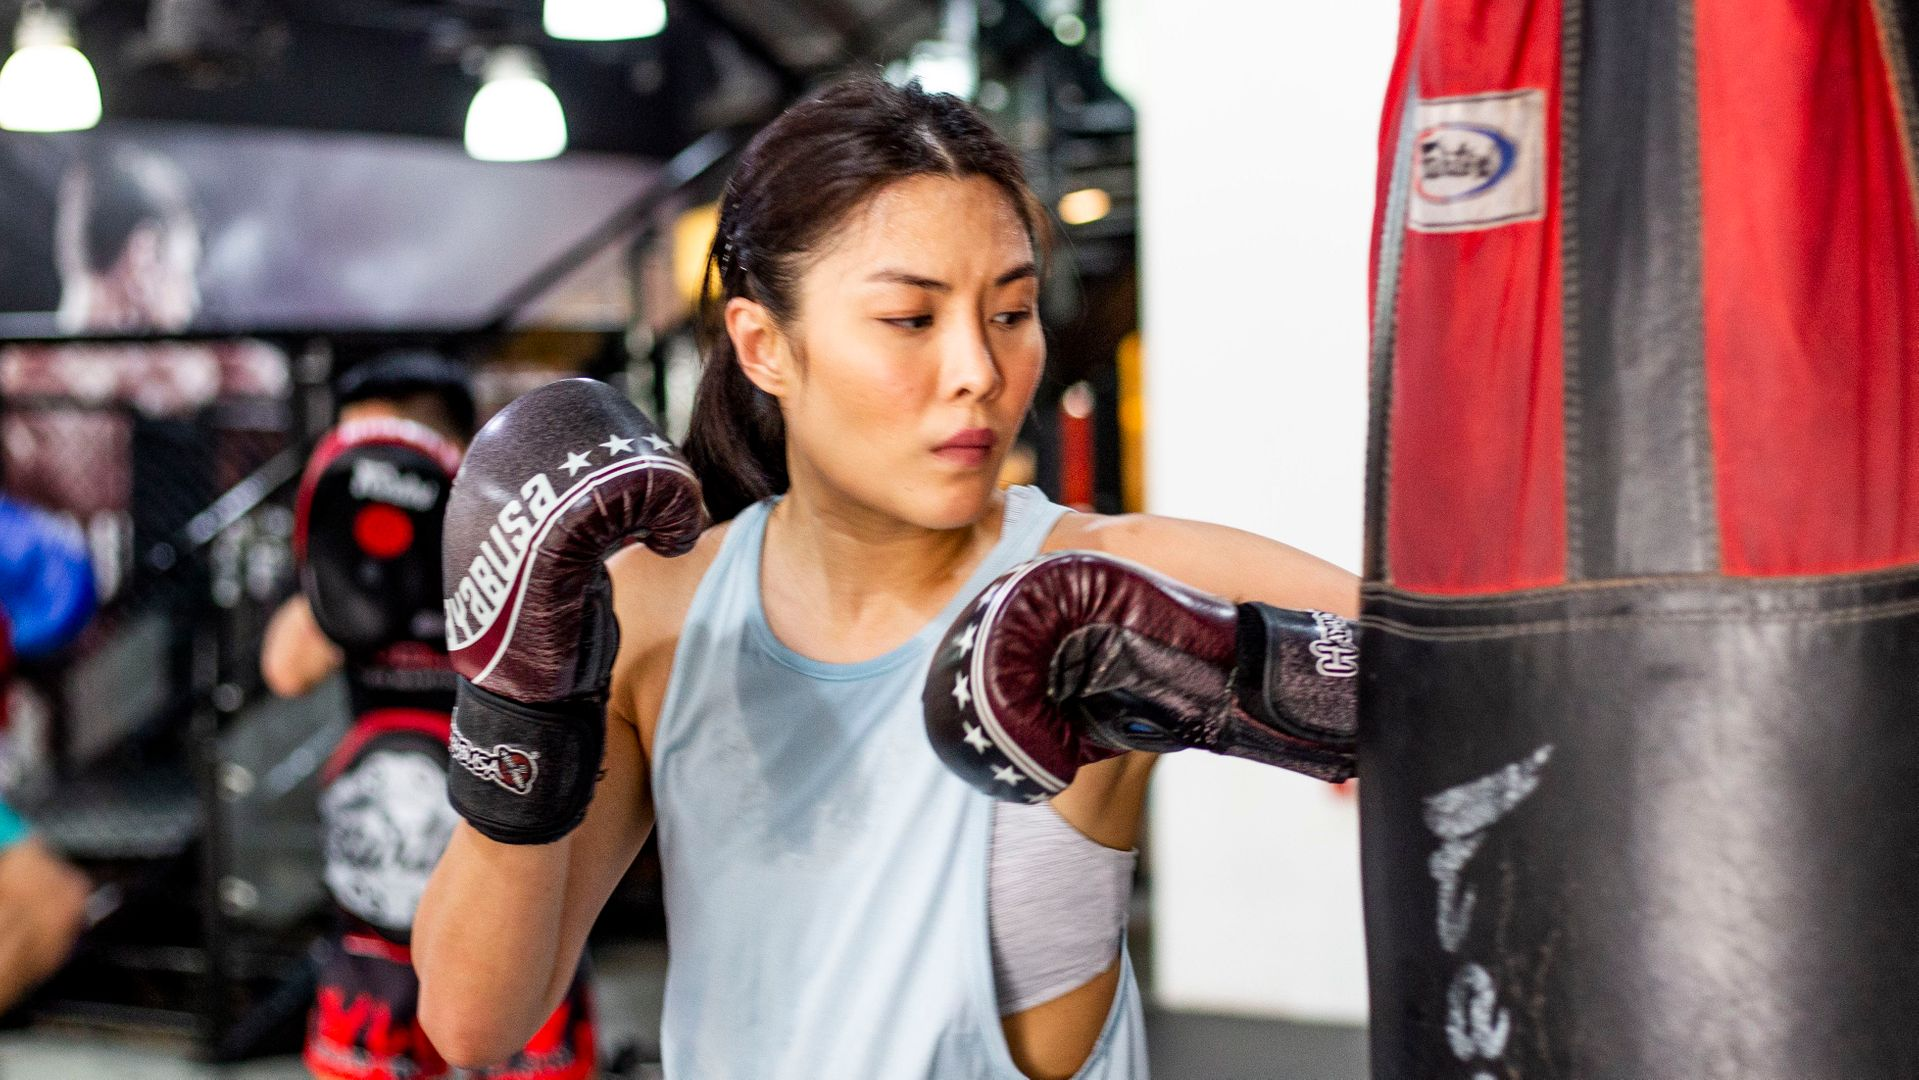 A female Muay Thai student throwing an elbow on a heavy bag.